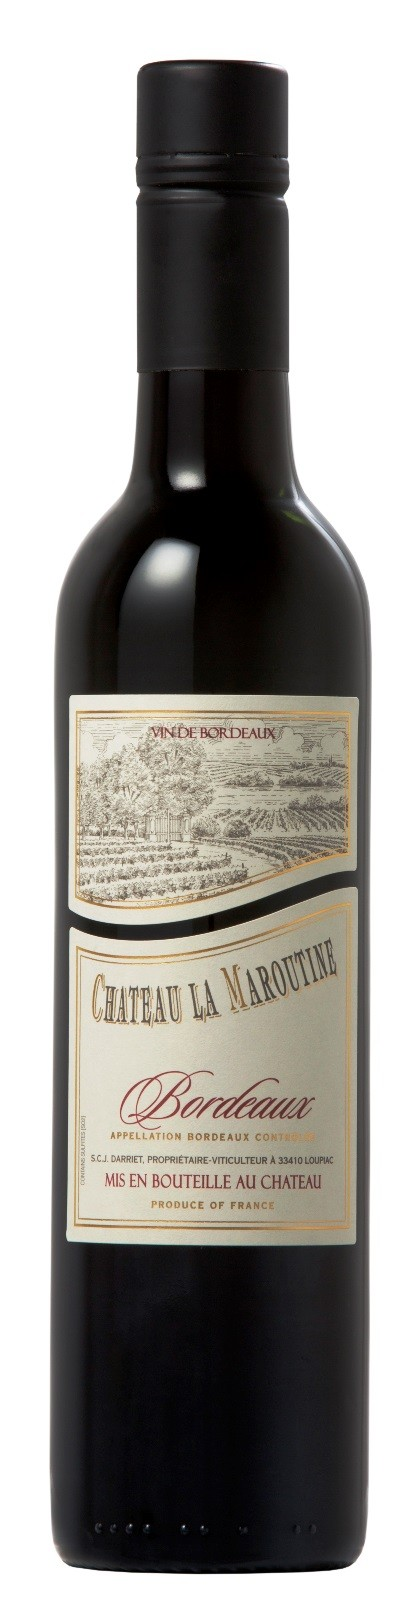 Chateau la Maroutine red 2016, 0,375 l, Bordeaux AOC - SCREWCAP